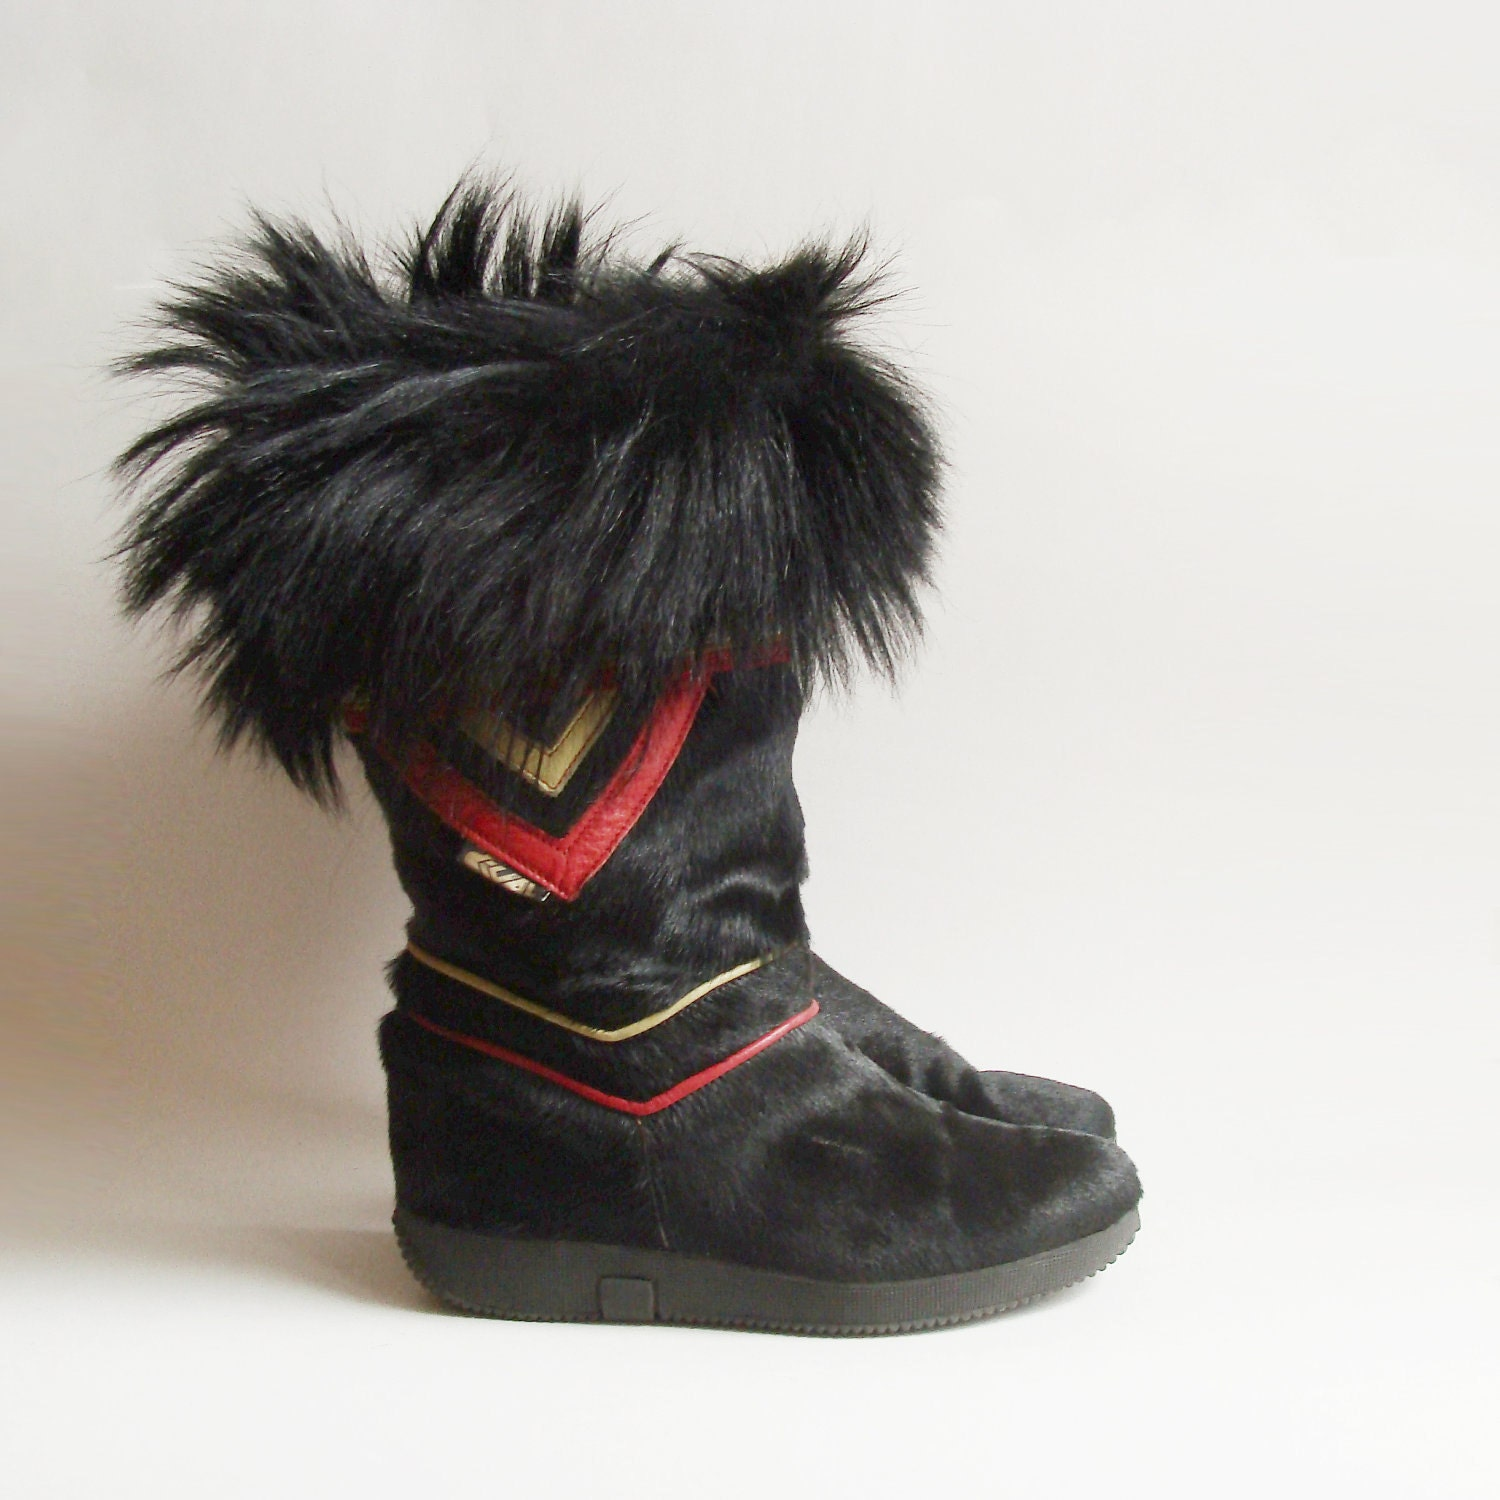 Boots 7 5 Tribal Furry Snow Boots Fur Trim Pony Boots